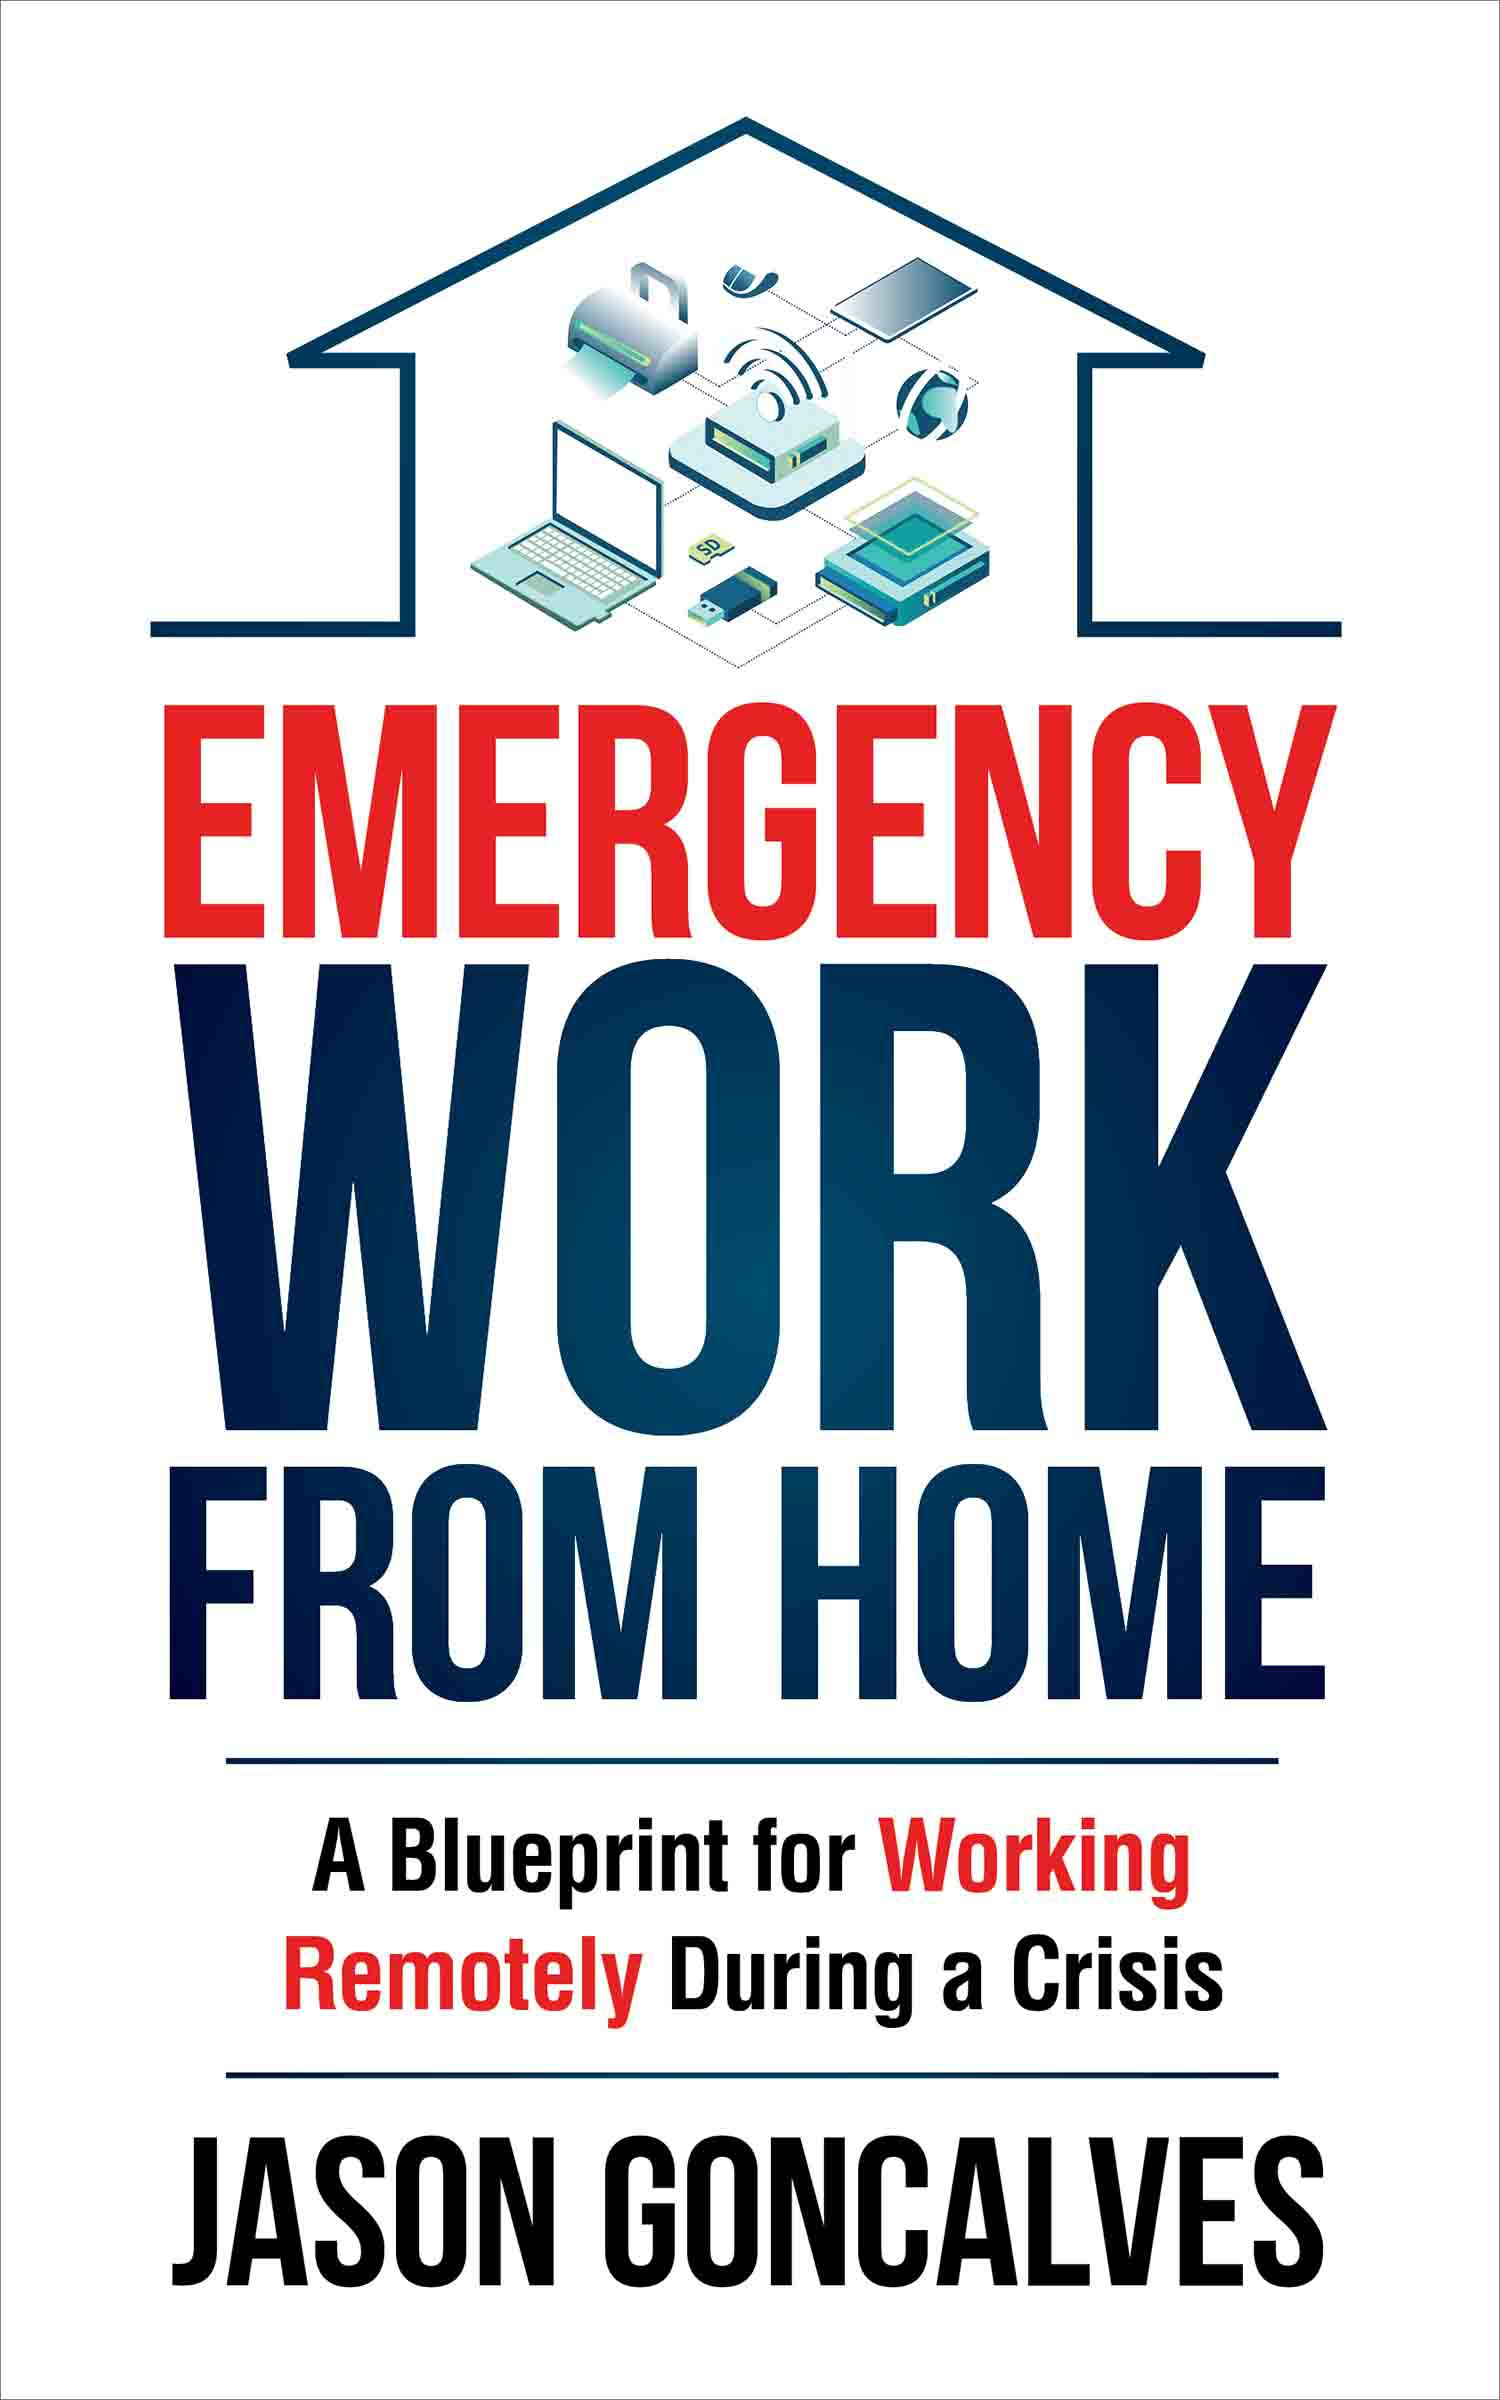 Book Cover Design book on Emergency Work From Home in a Pandemic